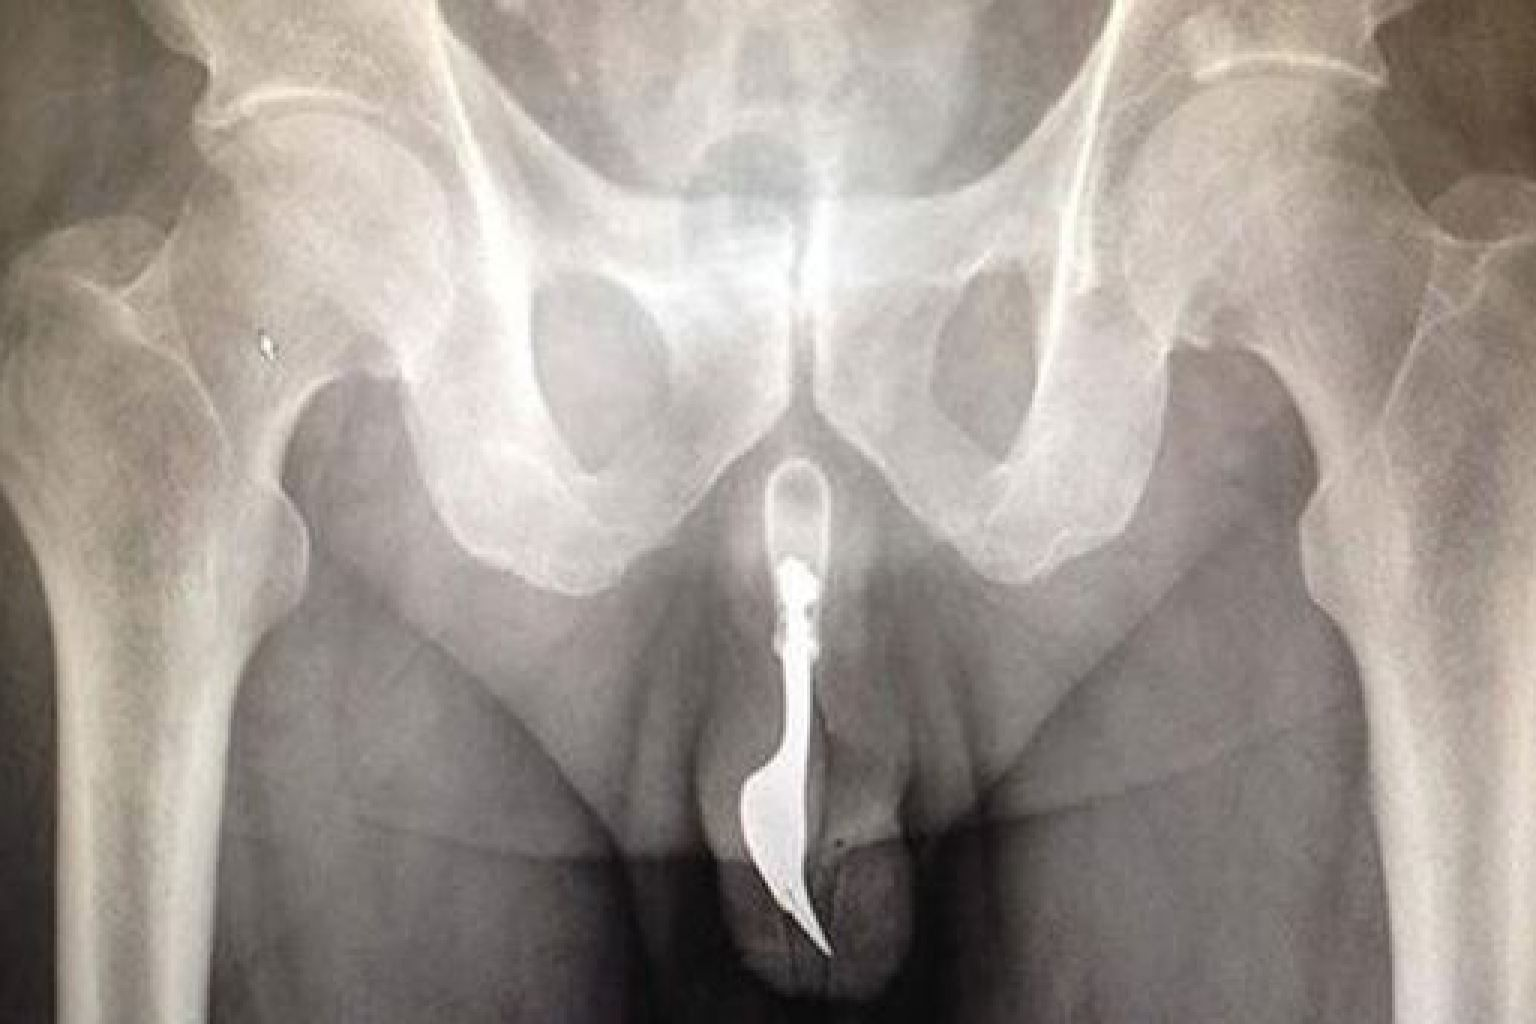 best of Penis side of Hole in